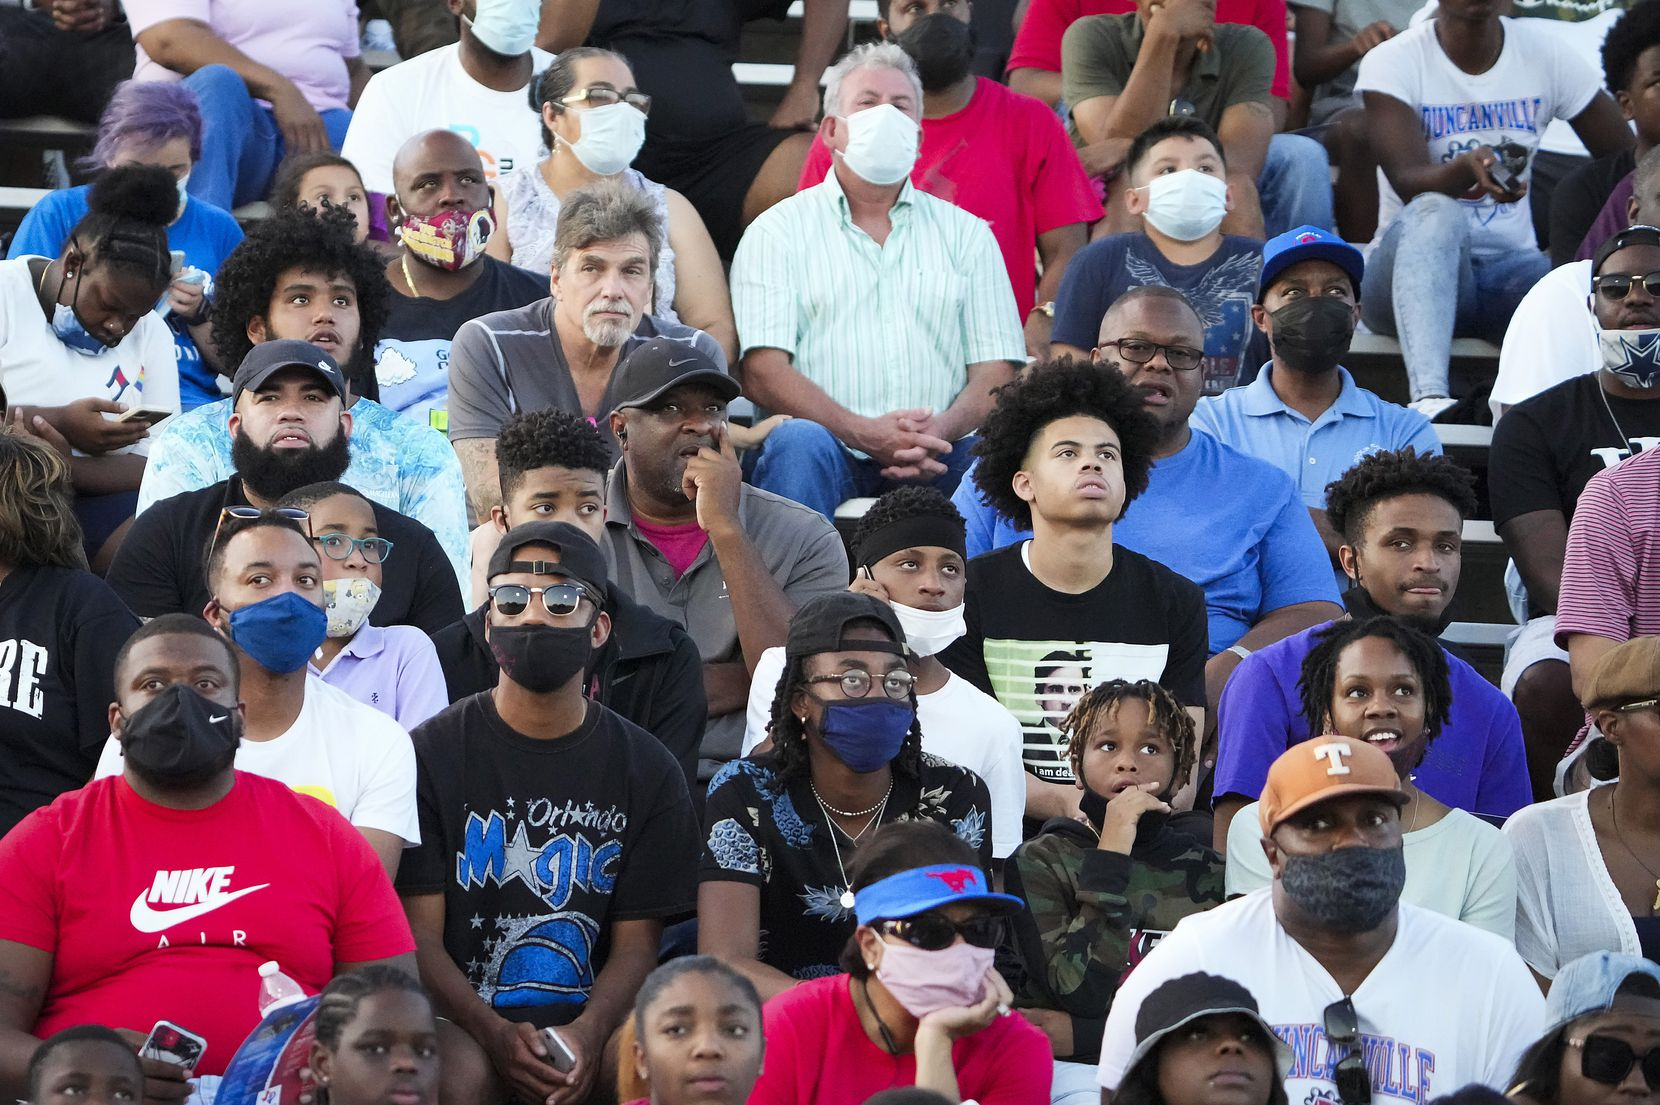 Duncanville fans watch during the first half of a high school football game against Mater Dei on Friday, Aug. 27, 2021, in Duncanville. (Smiley N. Pool/The Dallas Morning News)